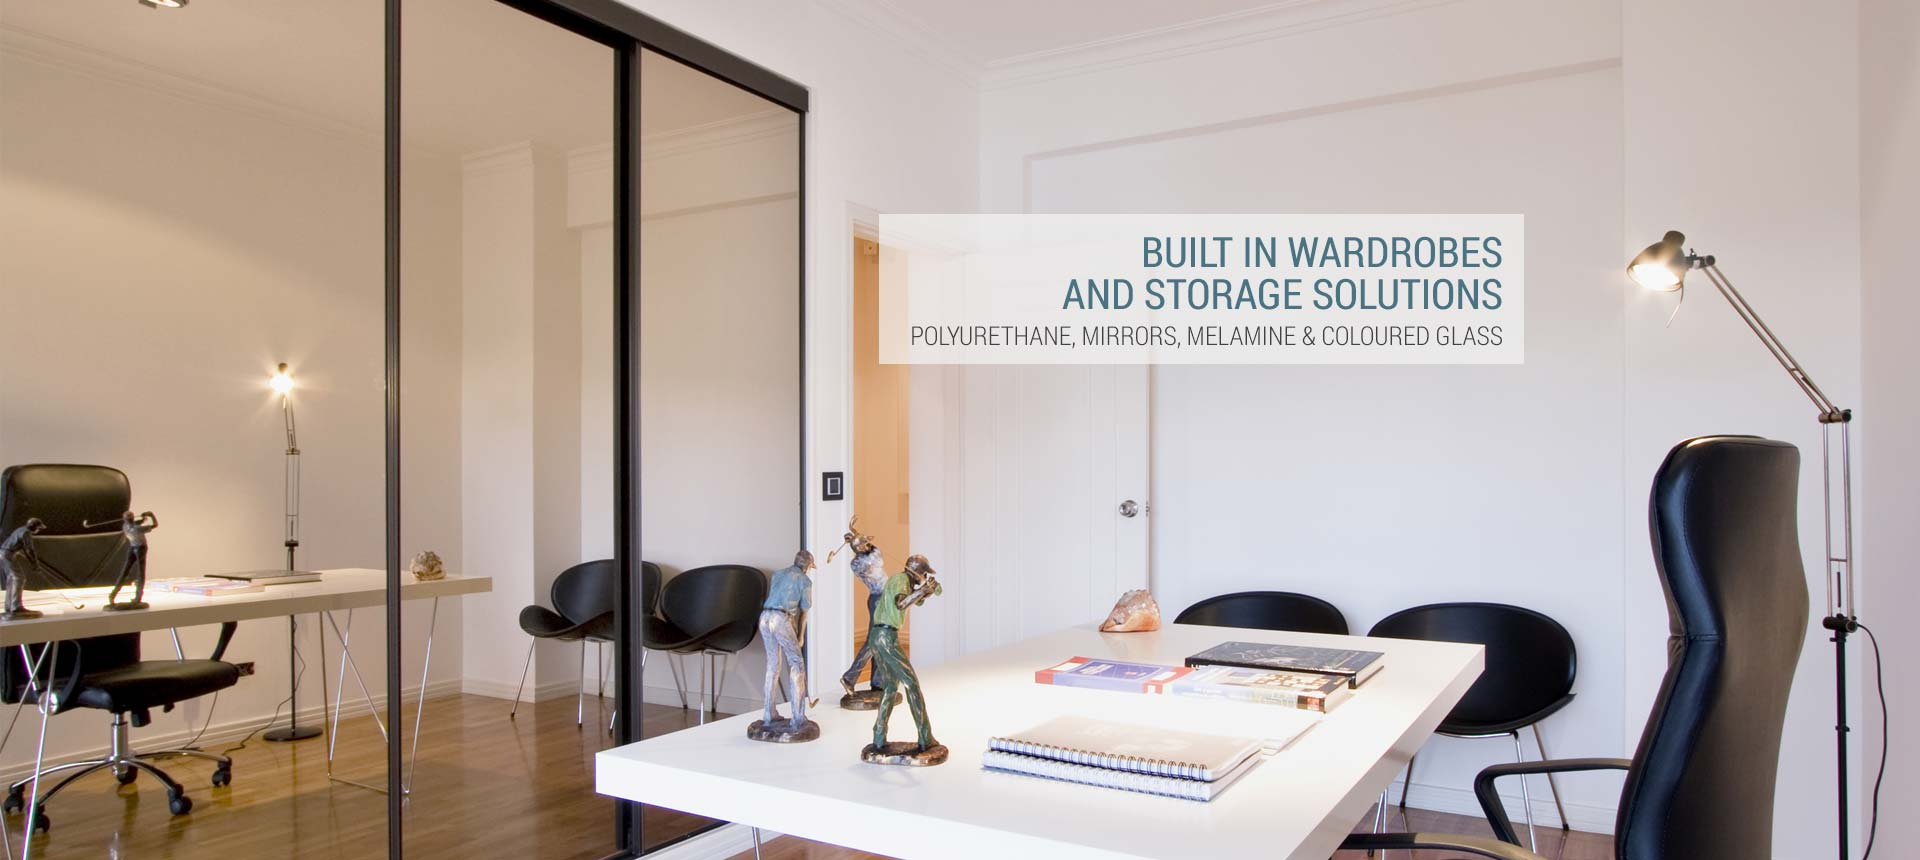 Sliderobes - Built-in Wardrobes And Storage Solutions